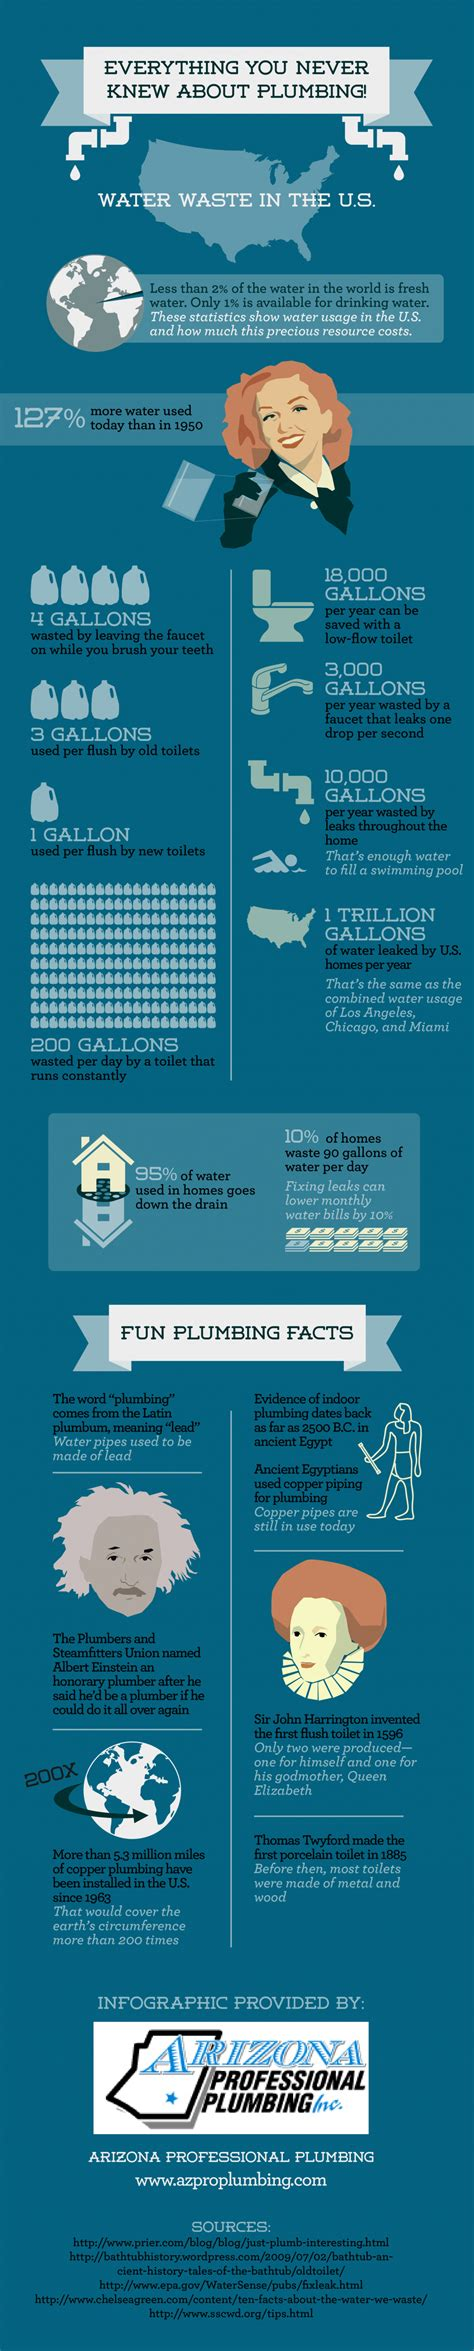 bathroom facts san antonio plumbing service shares fun plumbing